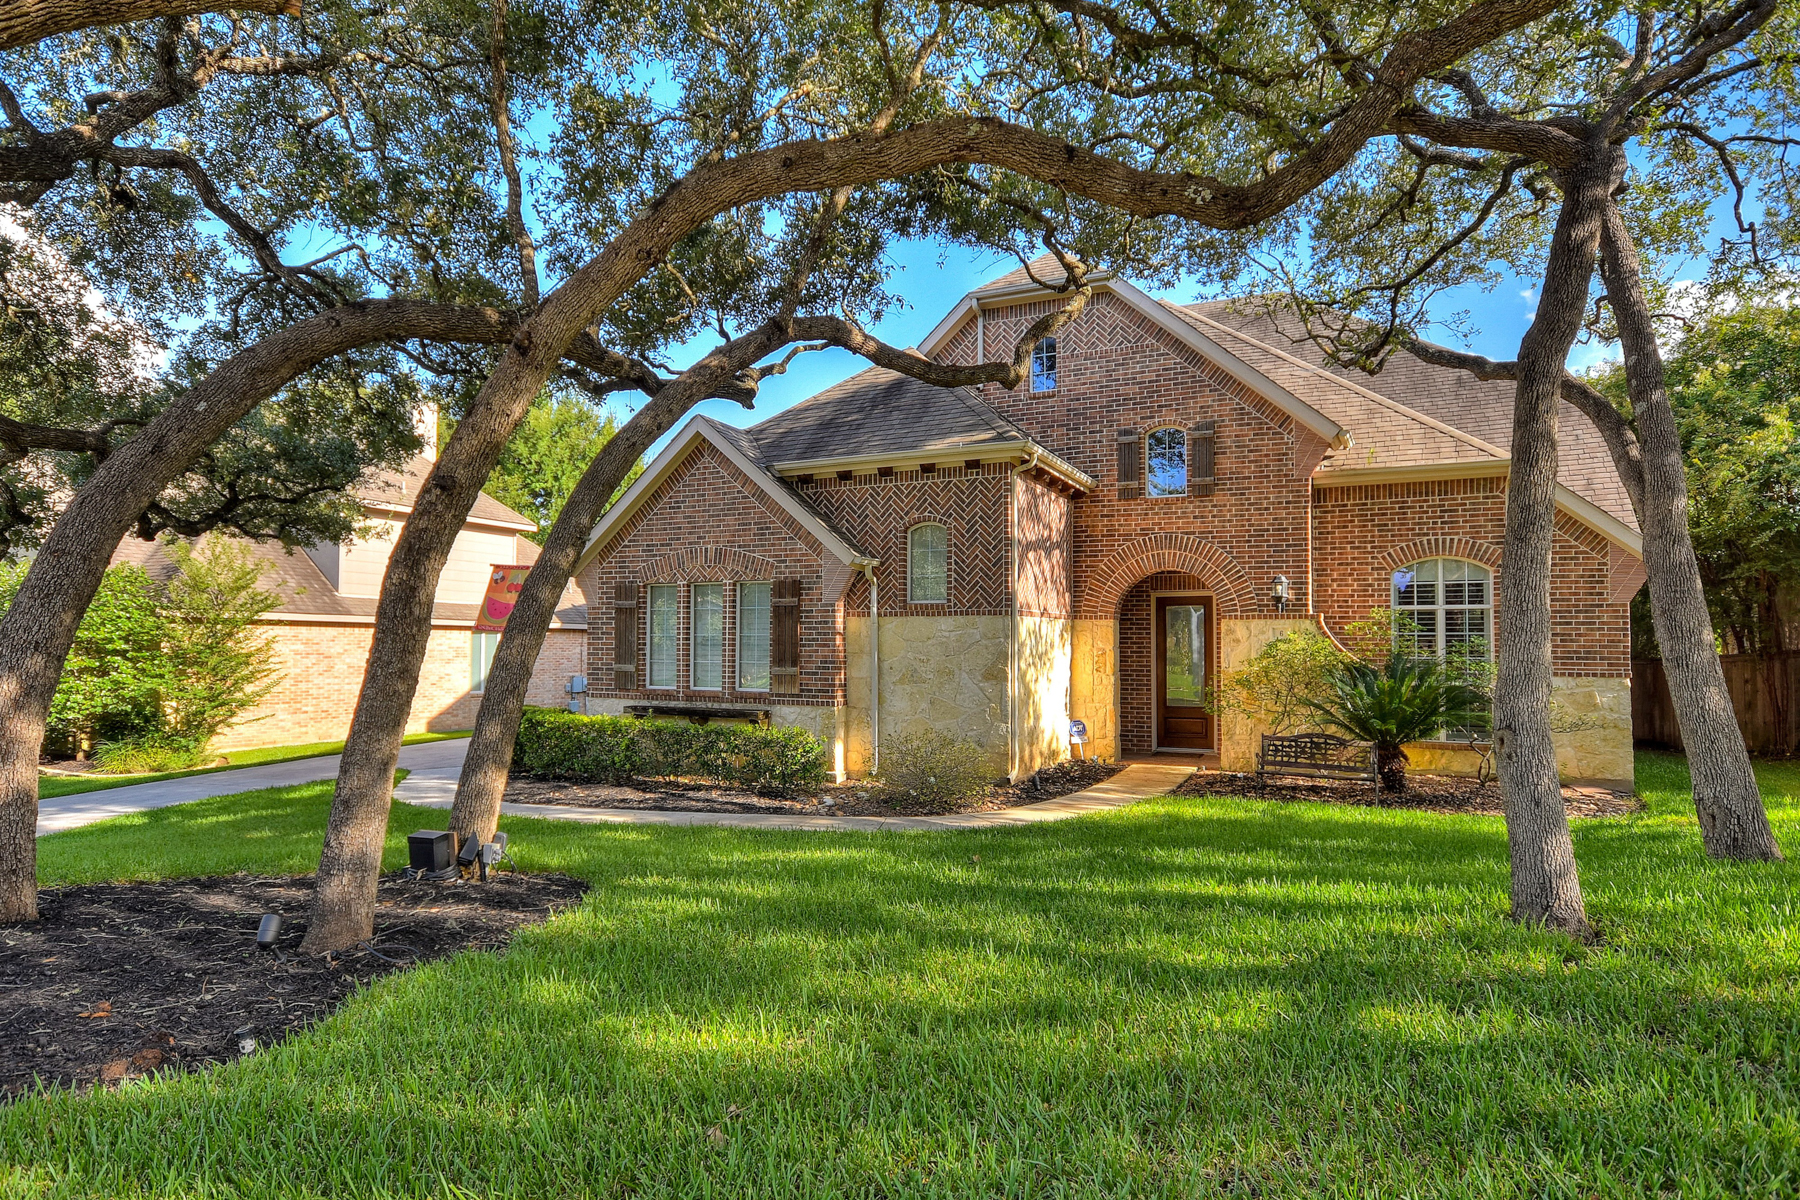 Single Family Home for Sale at Impressive Estate in Stonewall Ranch 6 Stonewall Bend Stonewall Ranch, San Antonio, Texas, 78256 United States